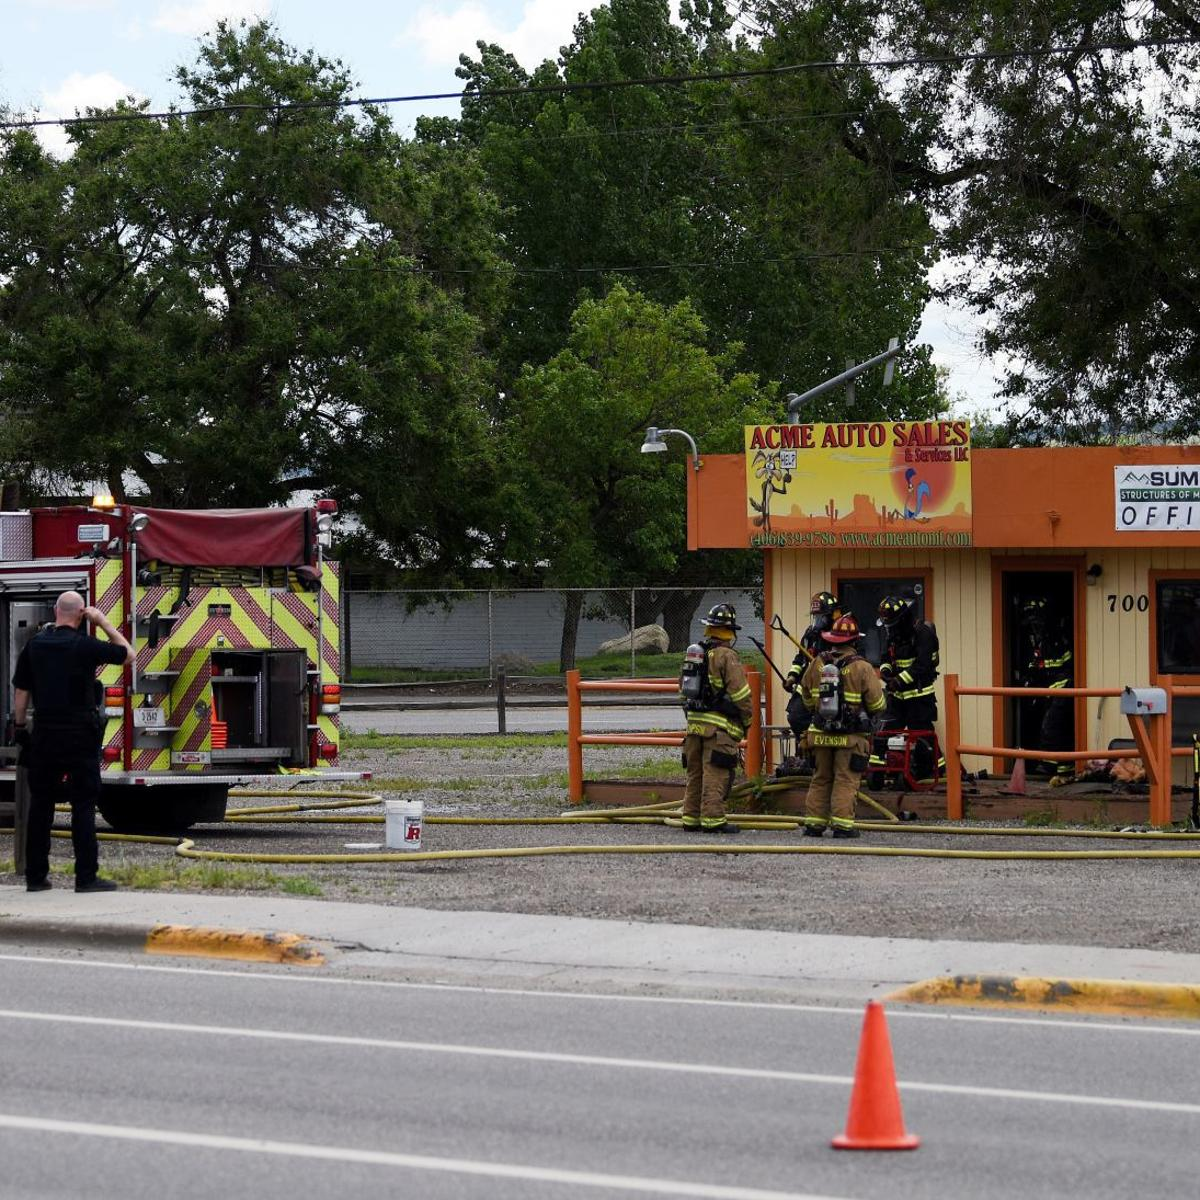 Sunday morning fire at Acme Auto Sales & Services remains